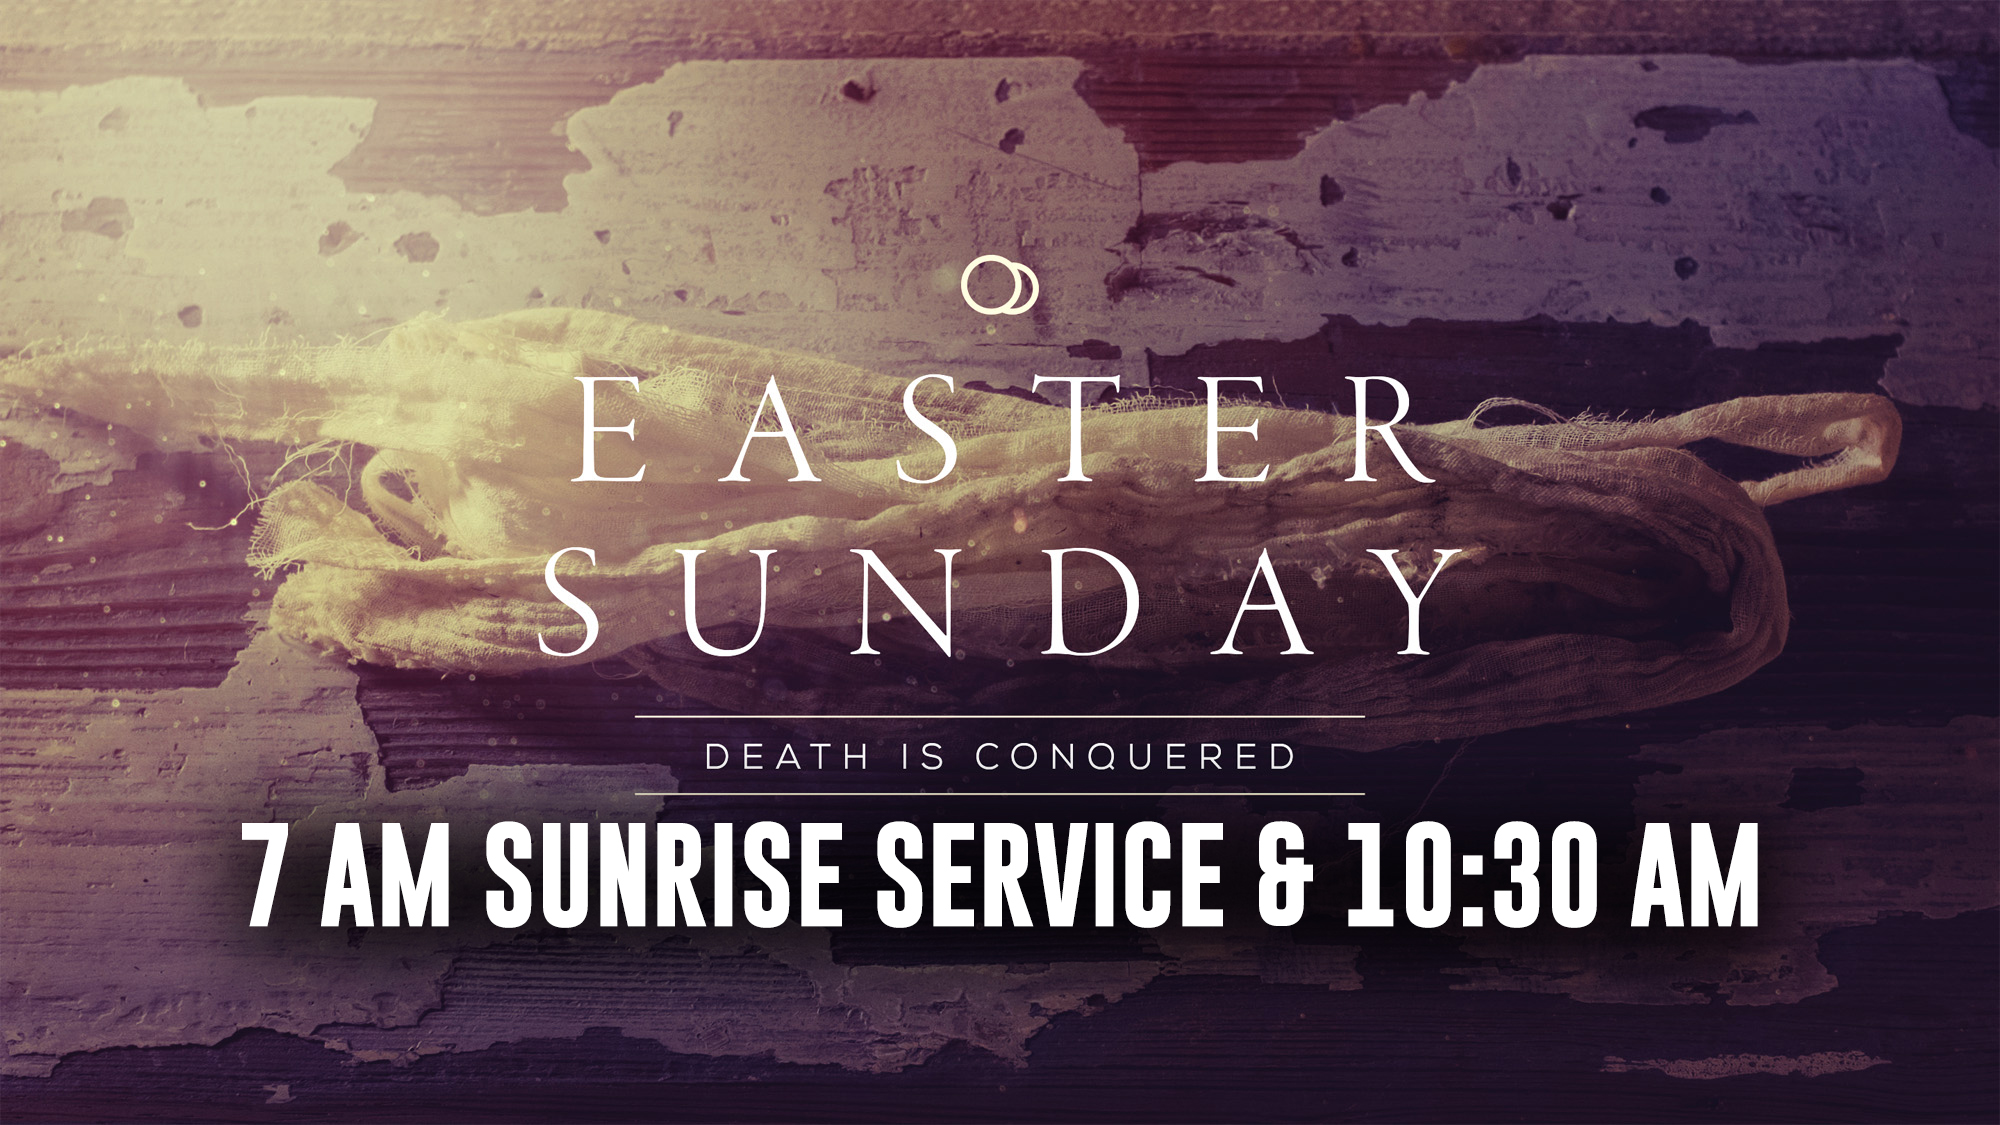 Celebration of the Resurrection, in-full! Join us for a morning of Easter resurrection praise.